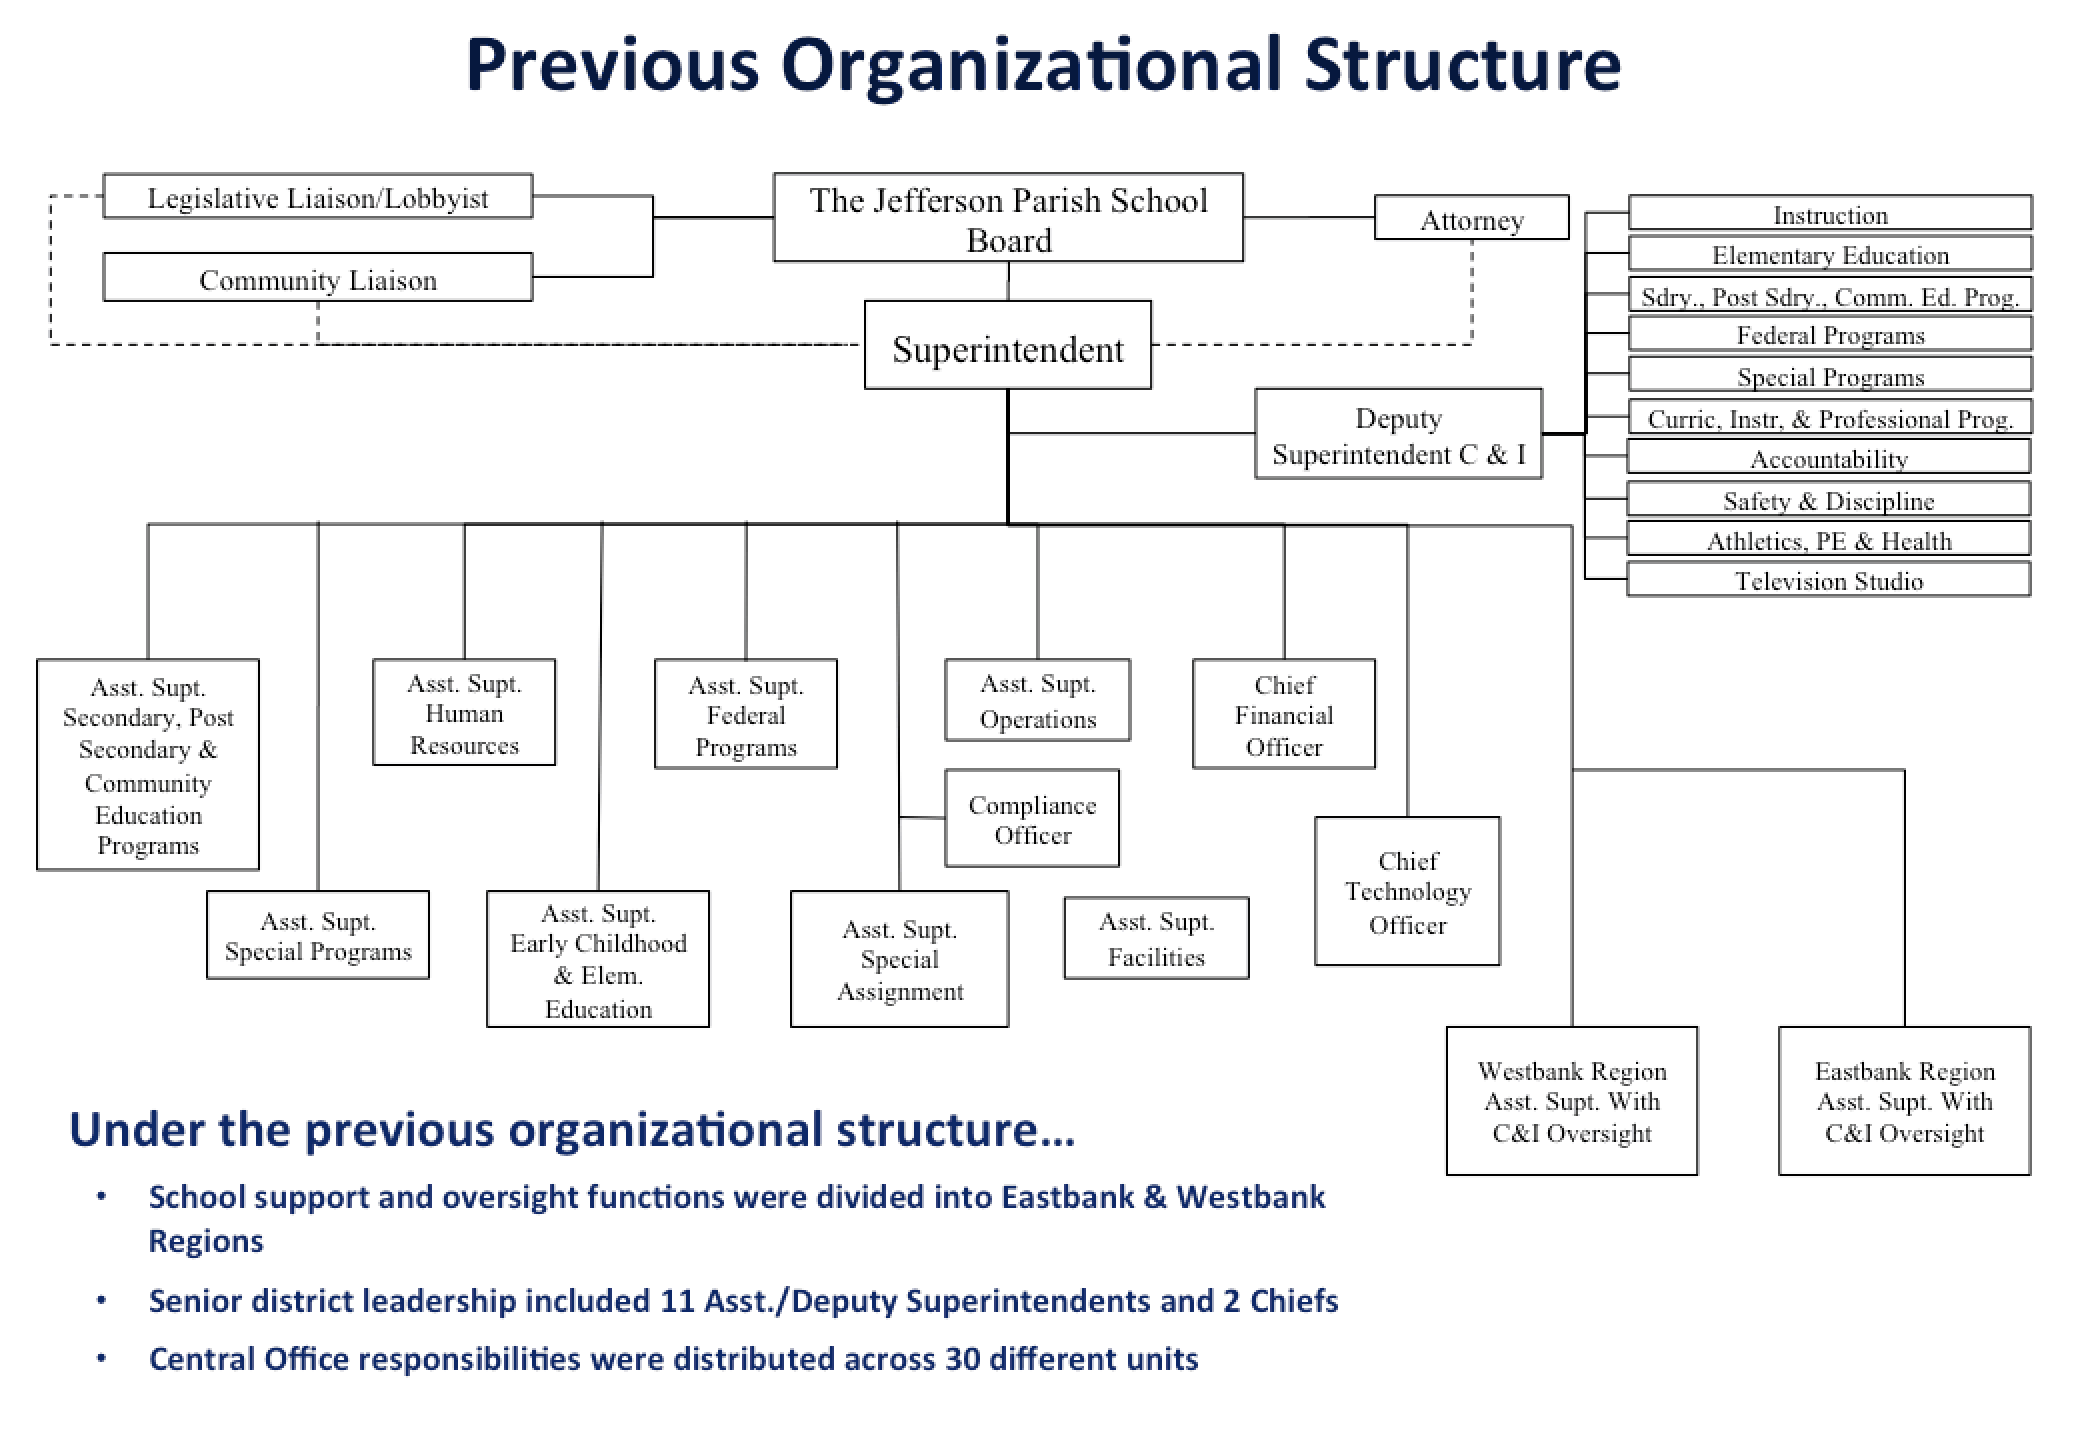 The district's previous organization structure.